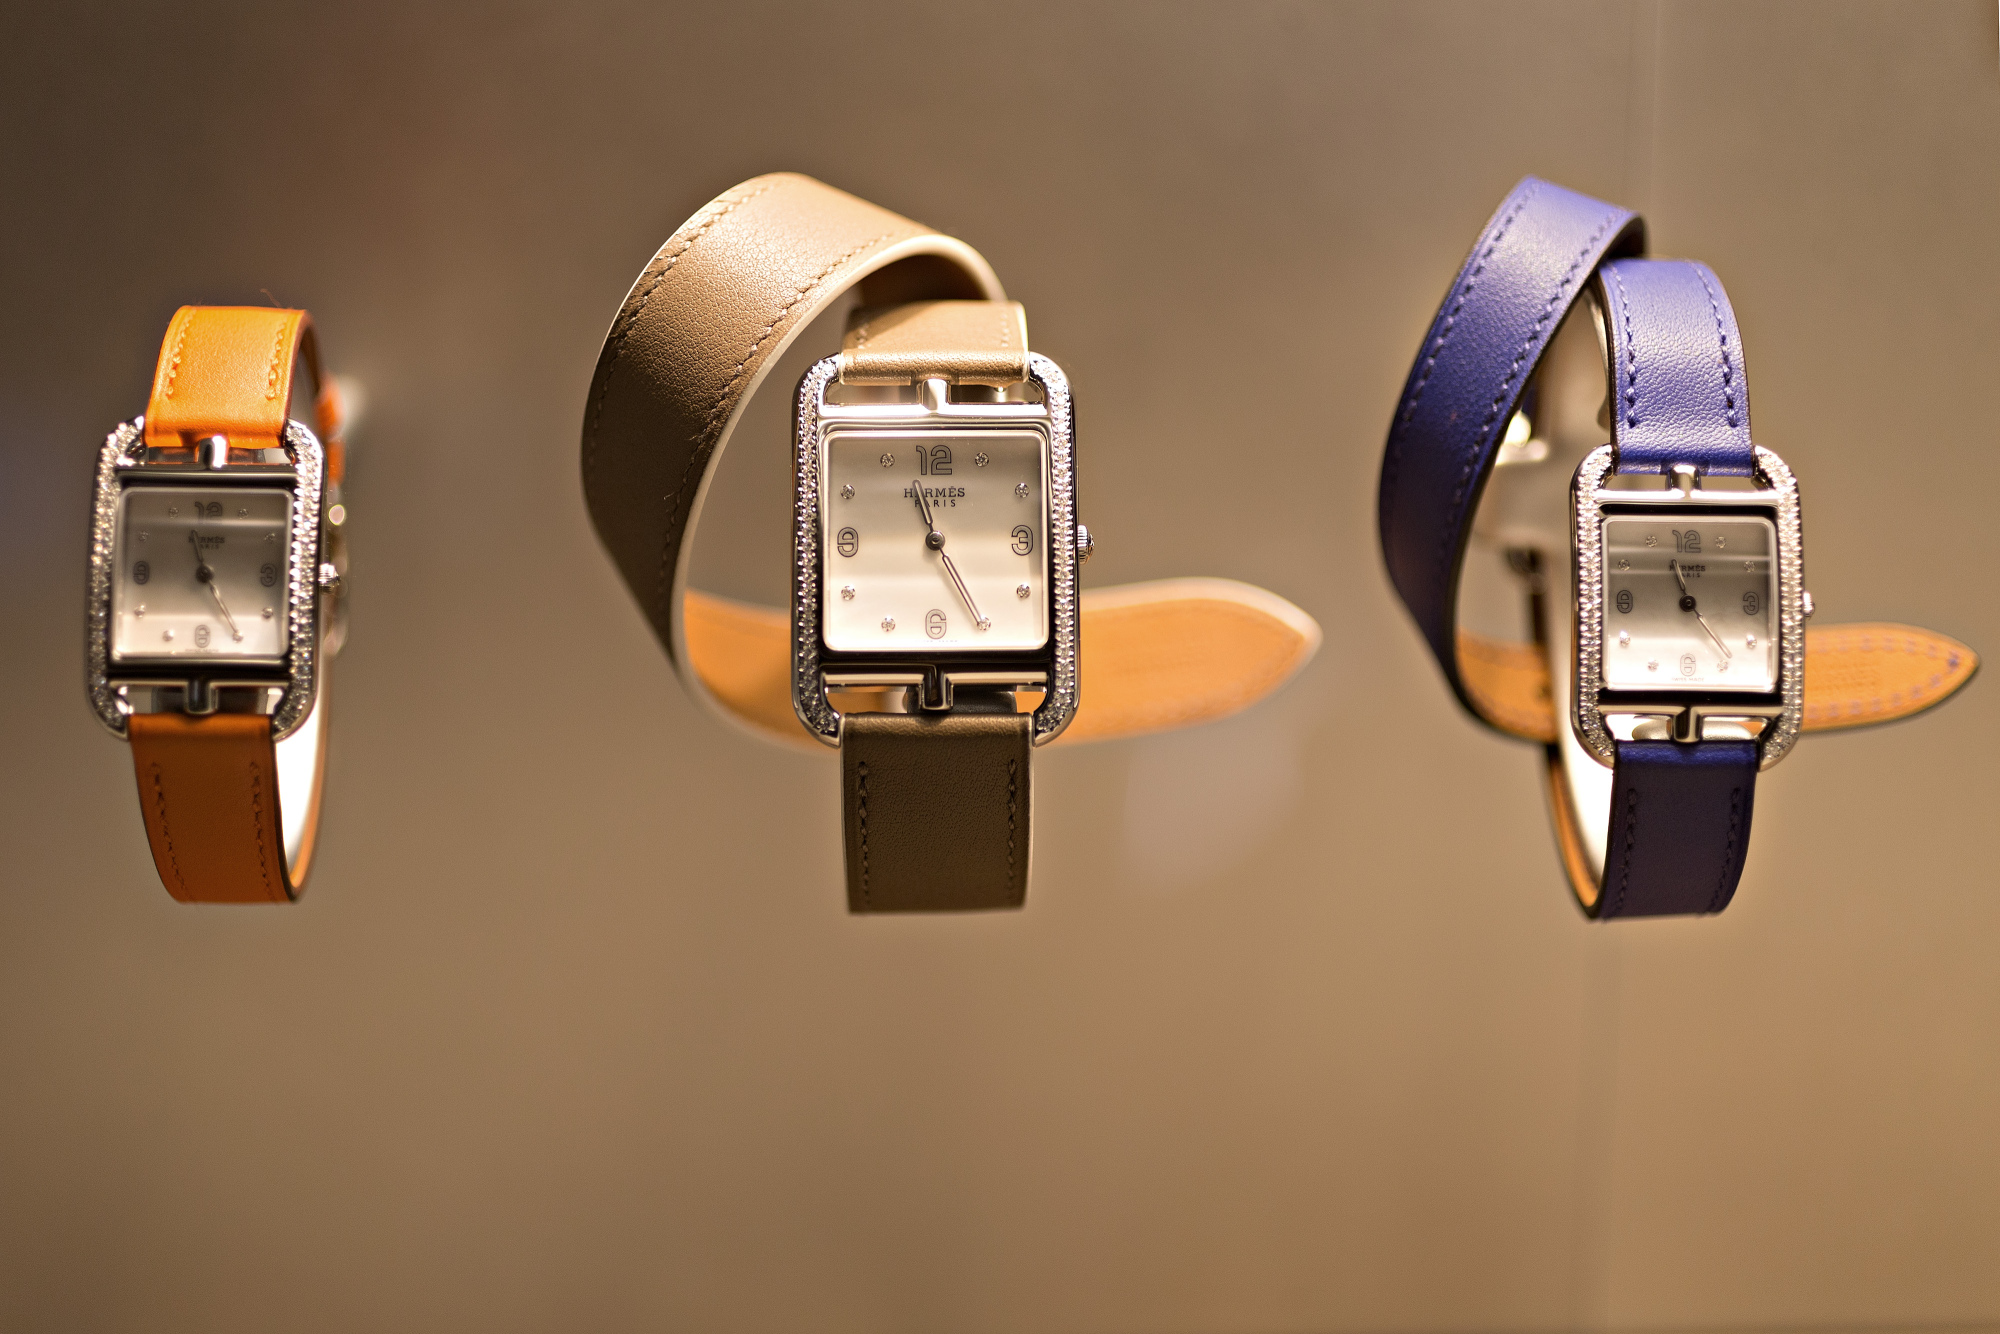 Cape Cod model luxury wristwatches, produced by Hermes International SCA.